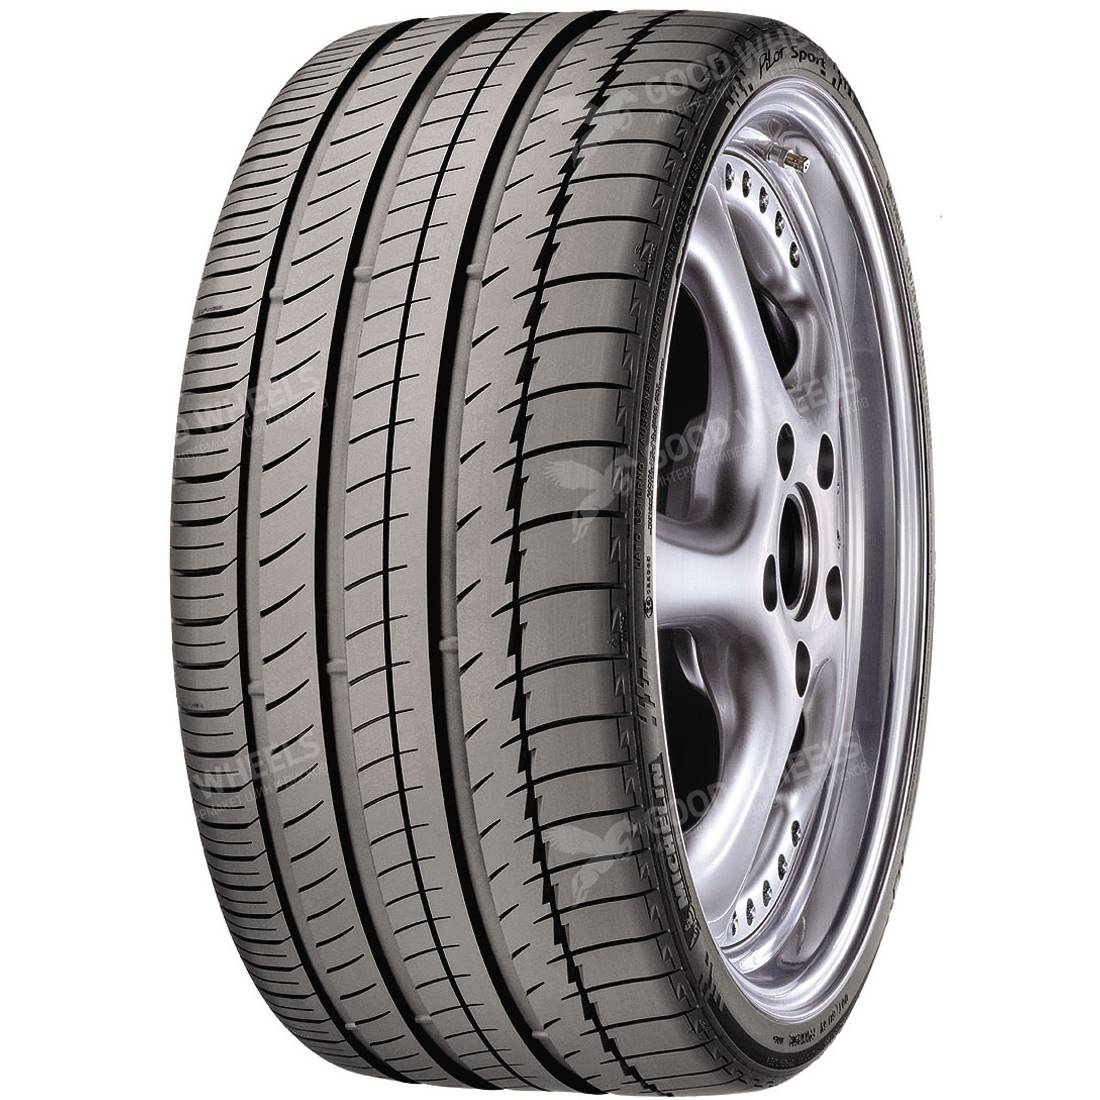 Michelin Pilot Sport 2 (PS2) 295/35 R20 105Y